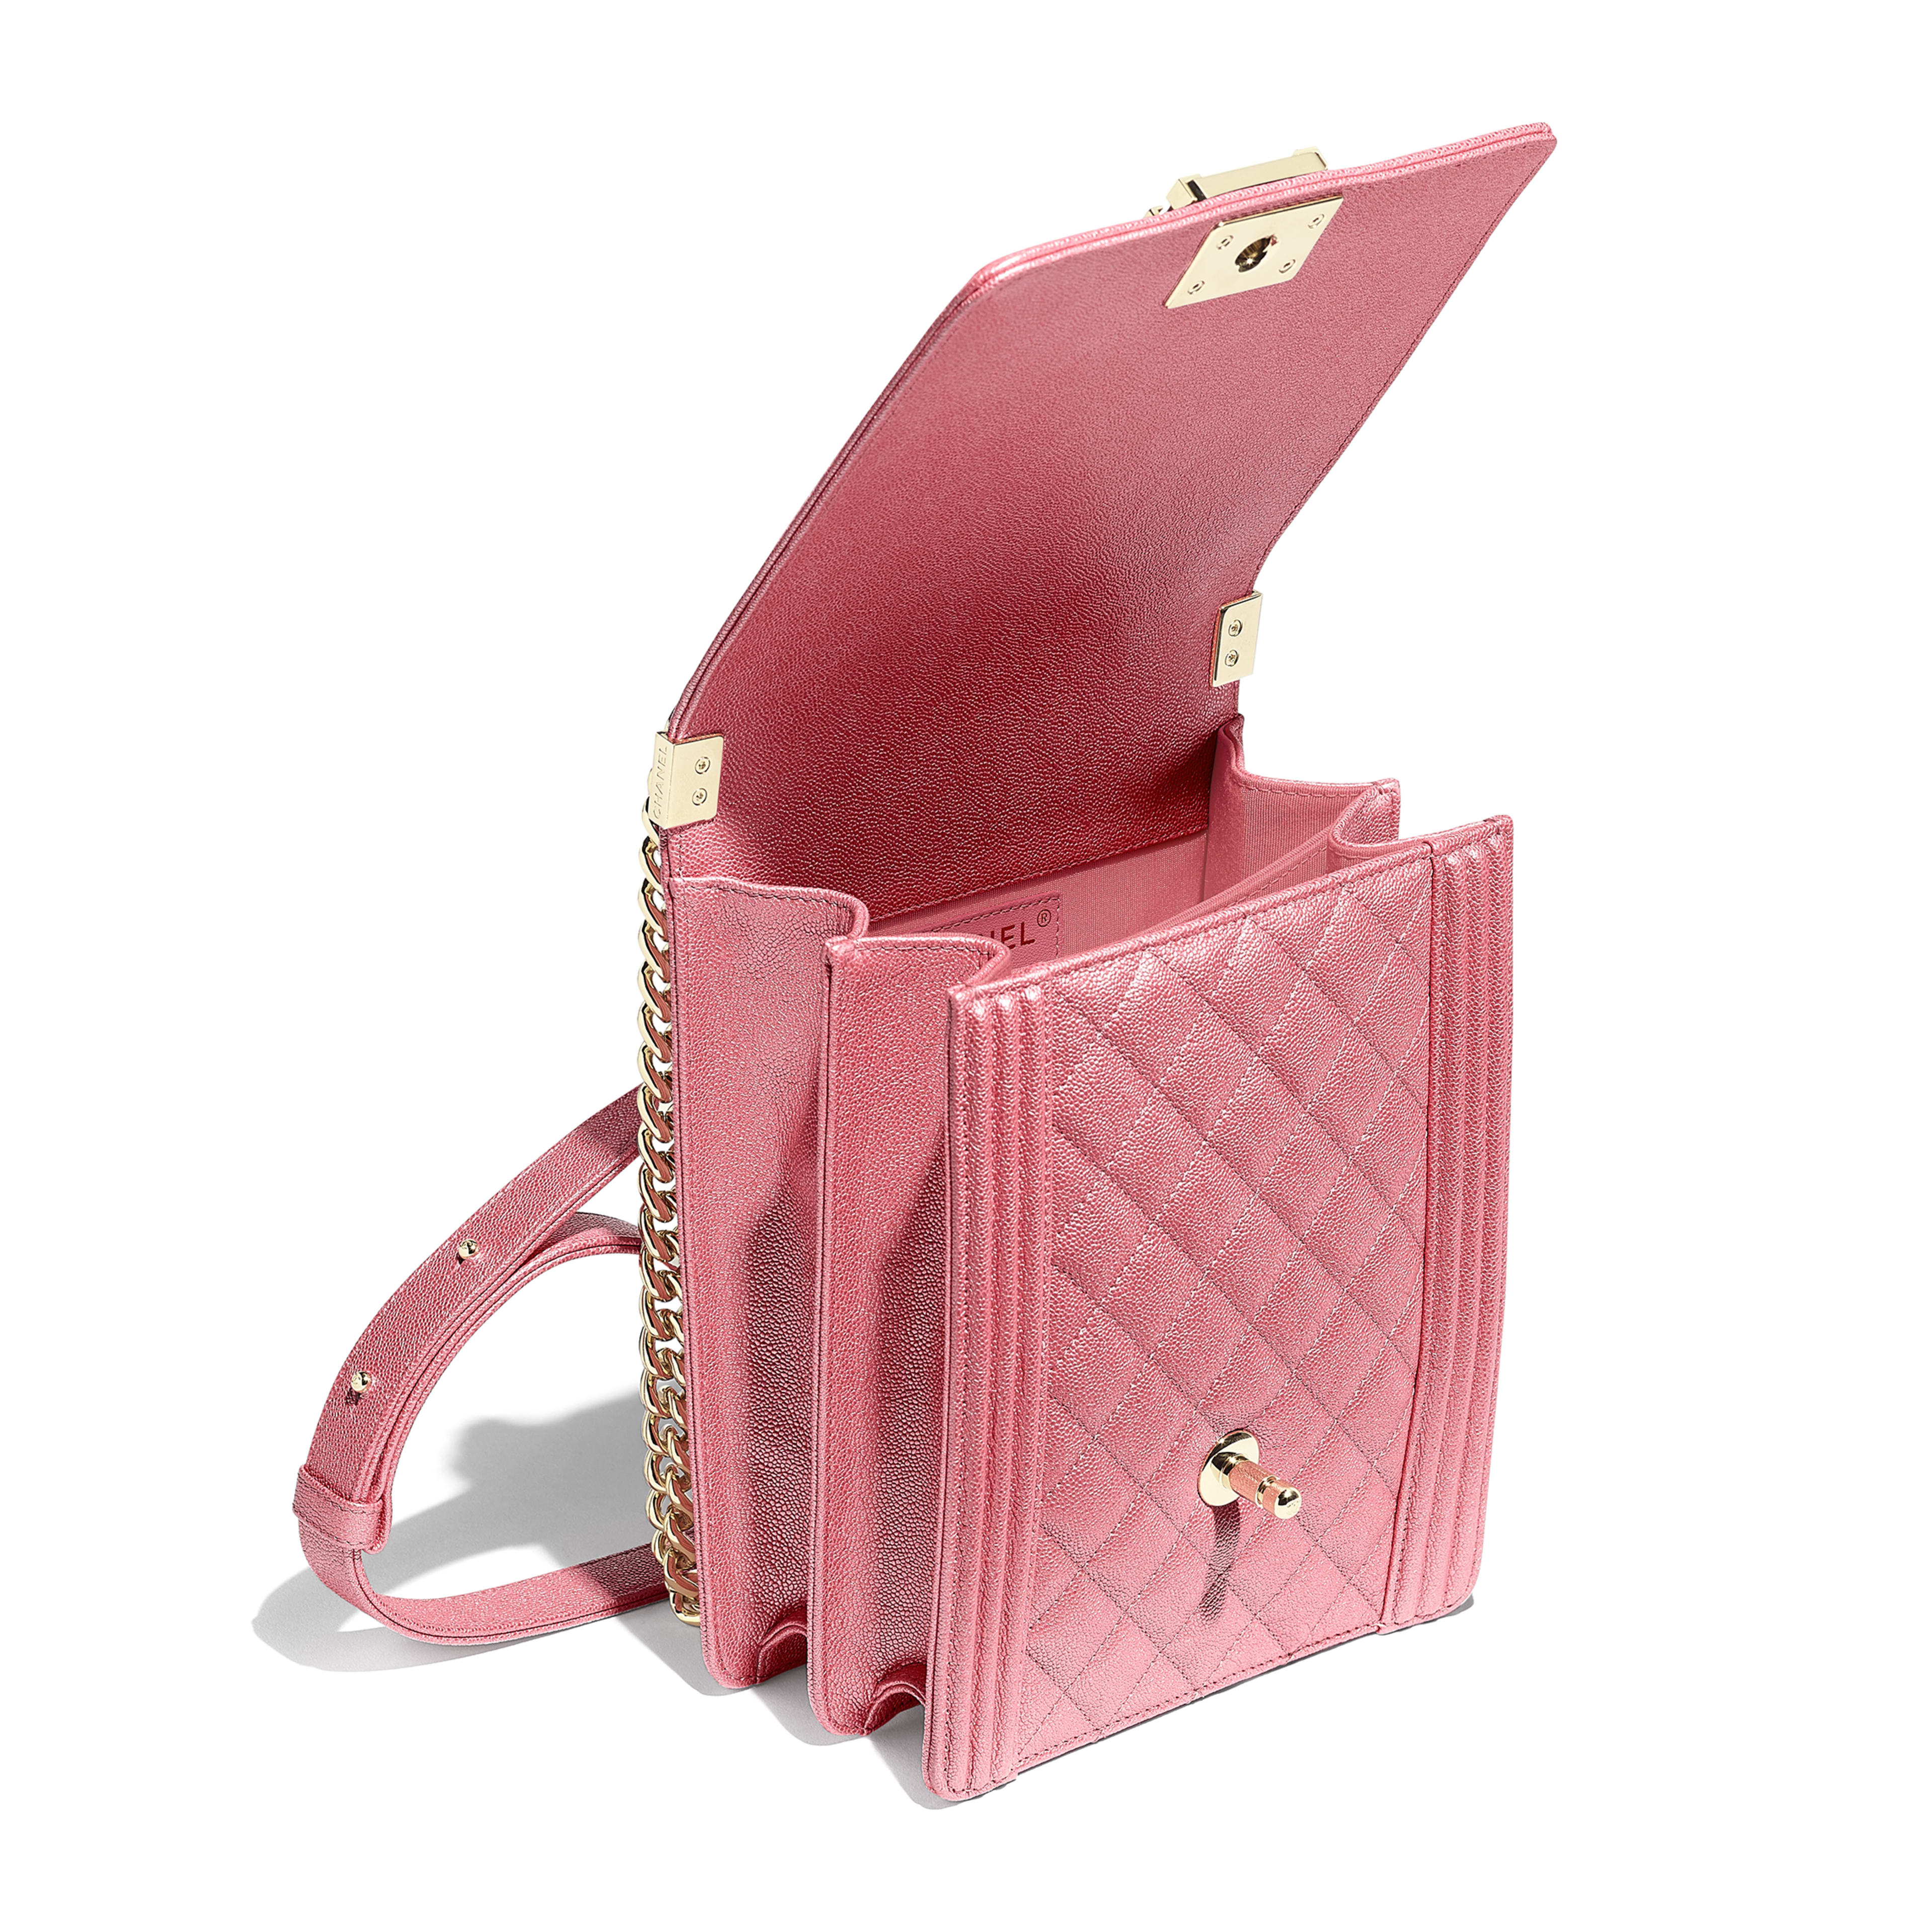 BOY CHANEL Handbag - Pink - Metallic Grained Calfskin & Gold-Tone Metal - Other view - see full sized version